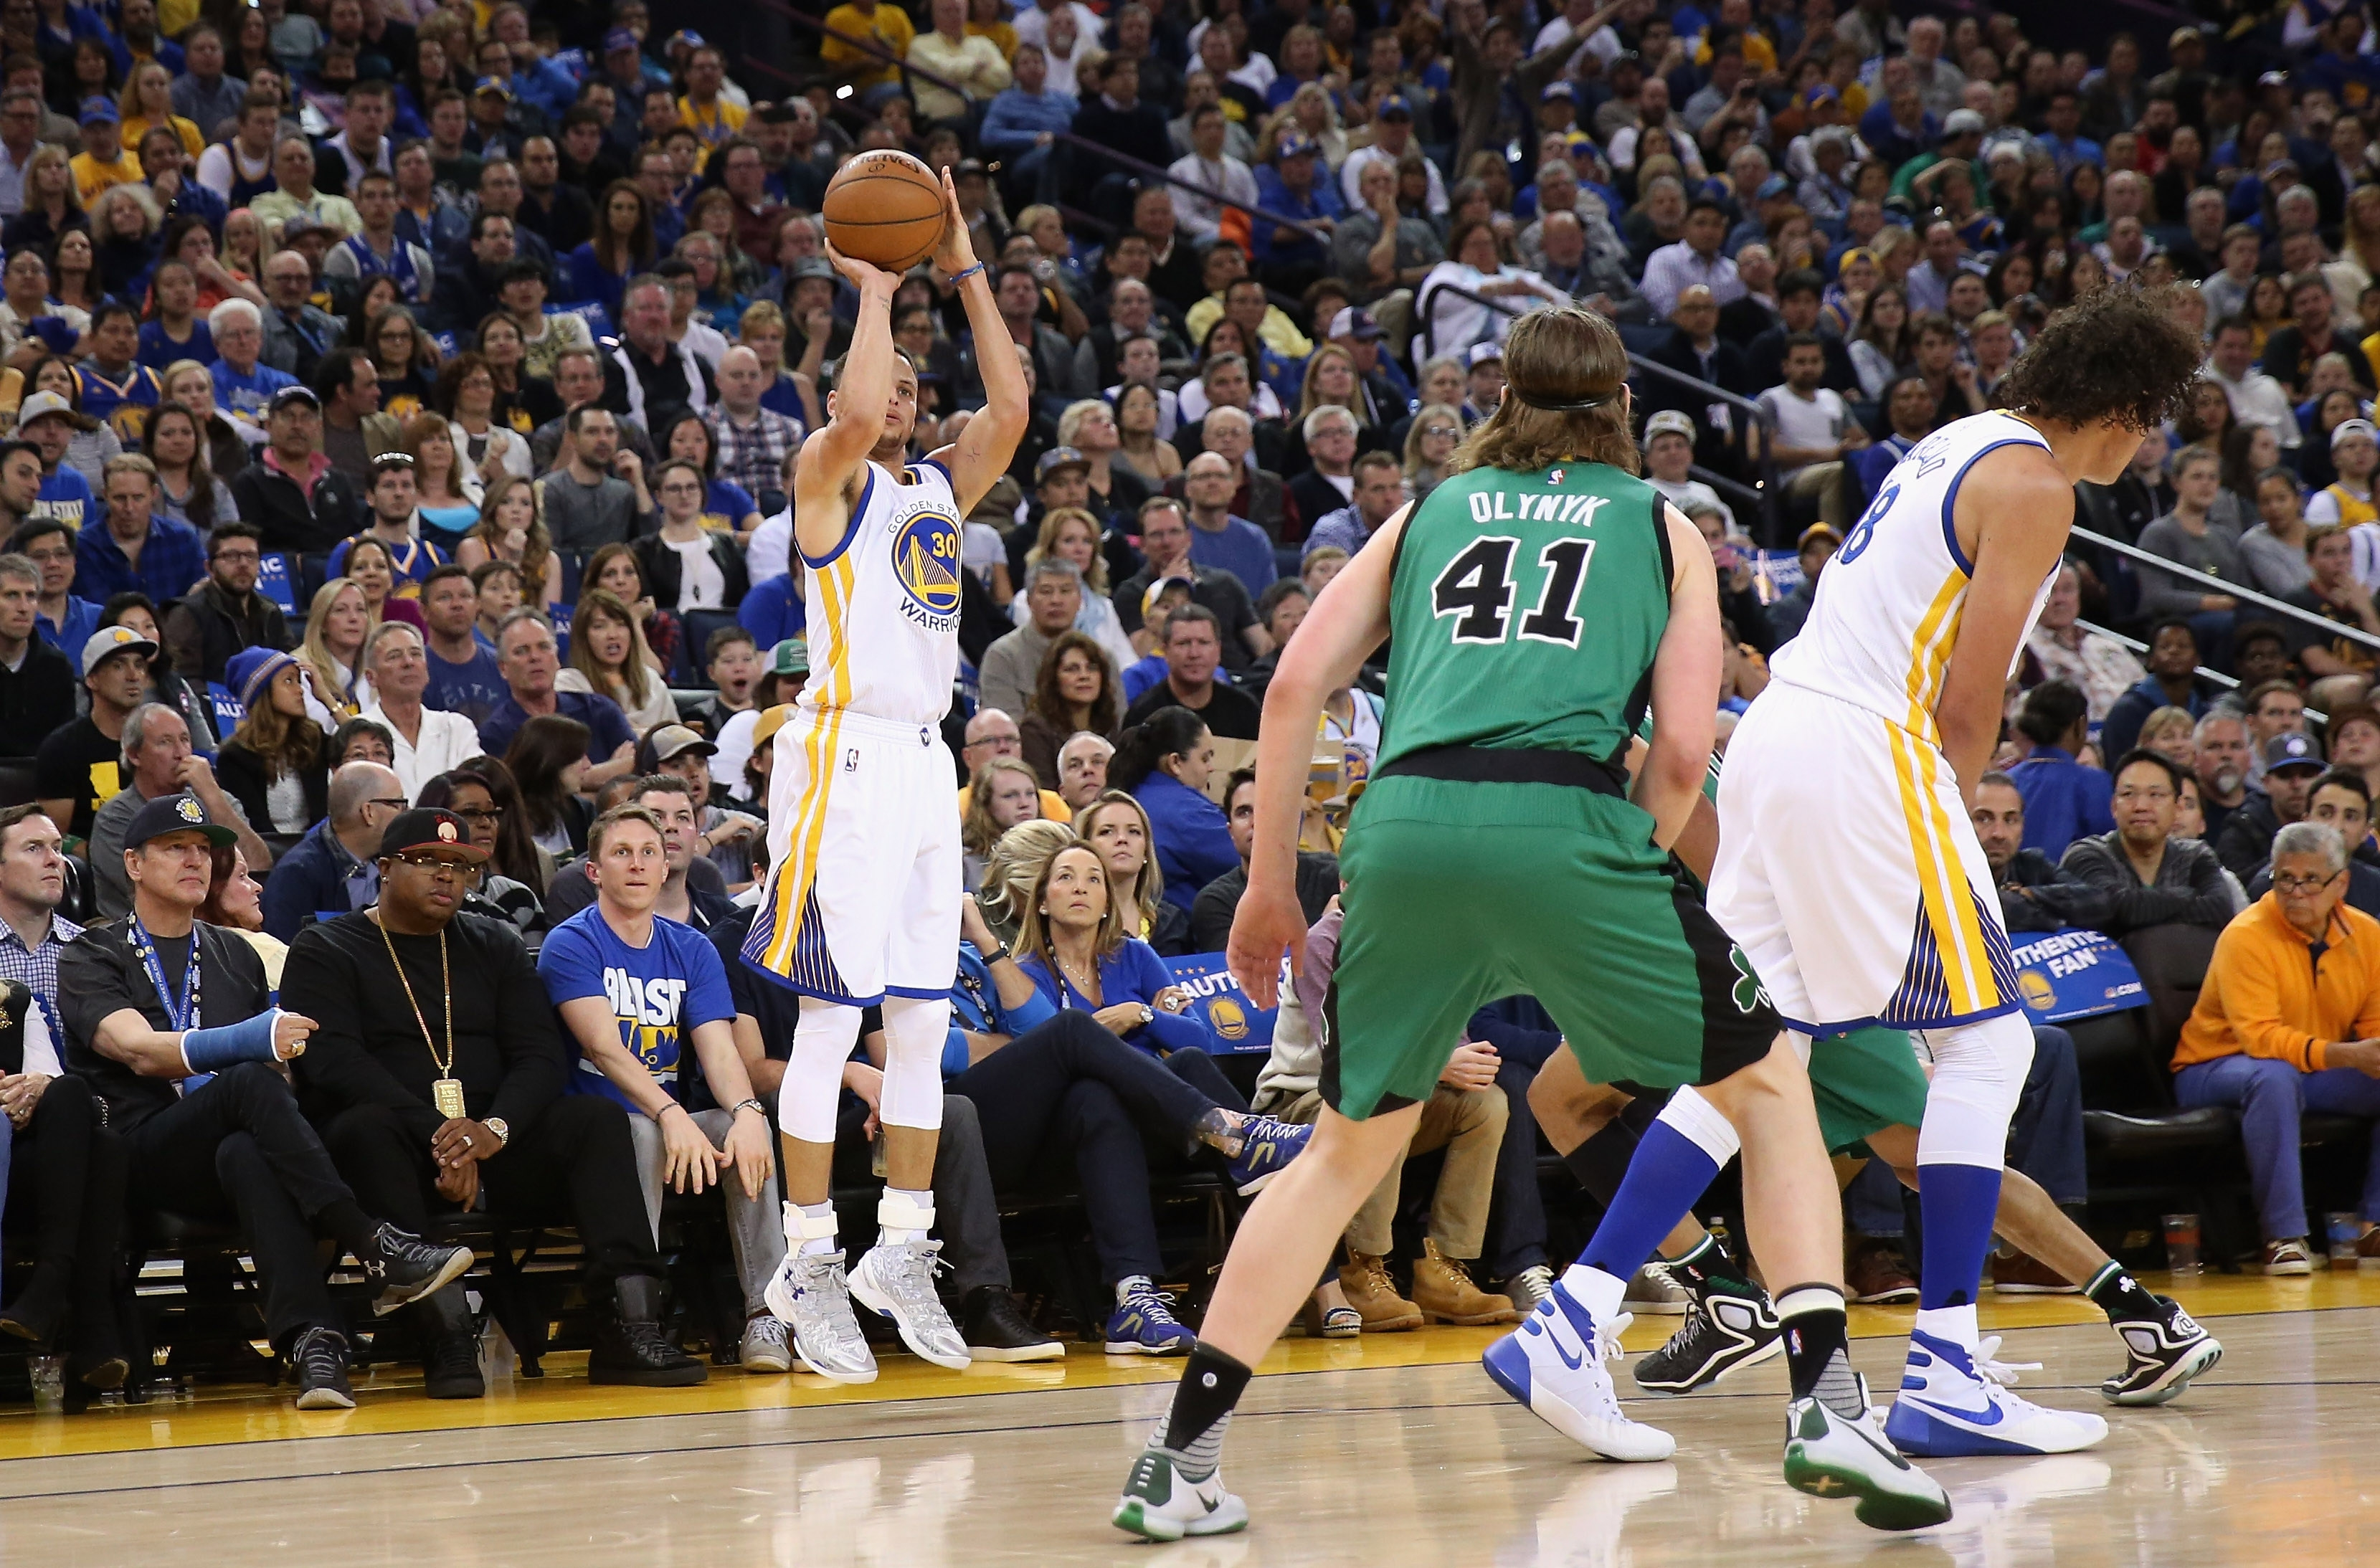 Stephen Curry of the Golden State Warriors shoots a three-point basket against the Boston Celtics at Oracle Arena on Saturday in Oakland, Calif.